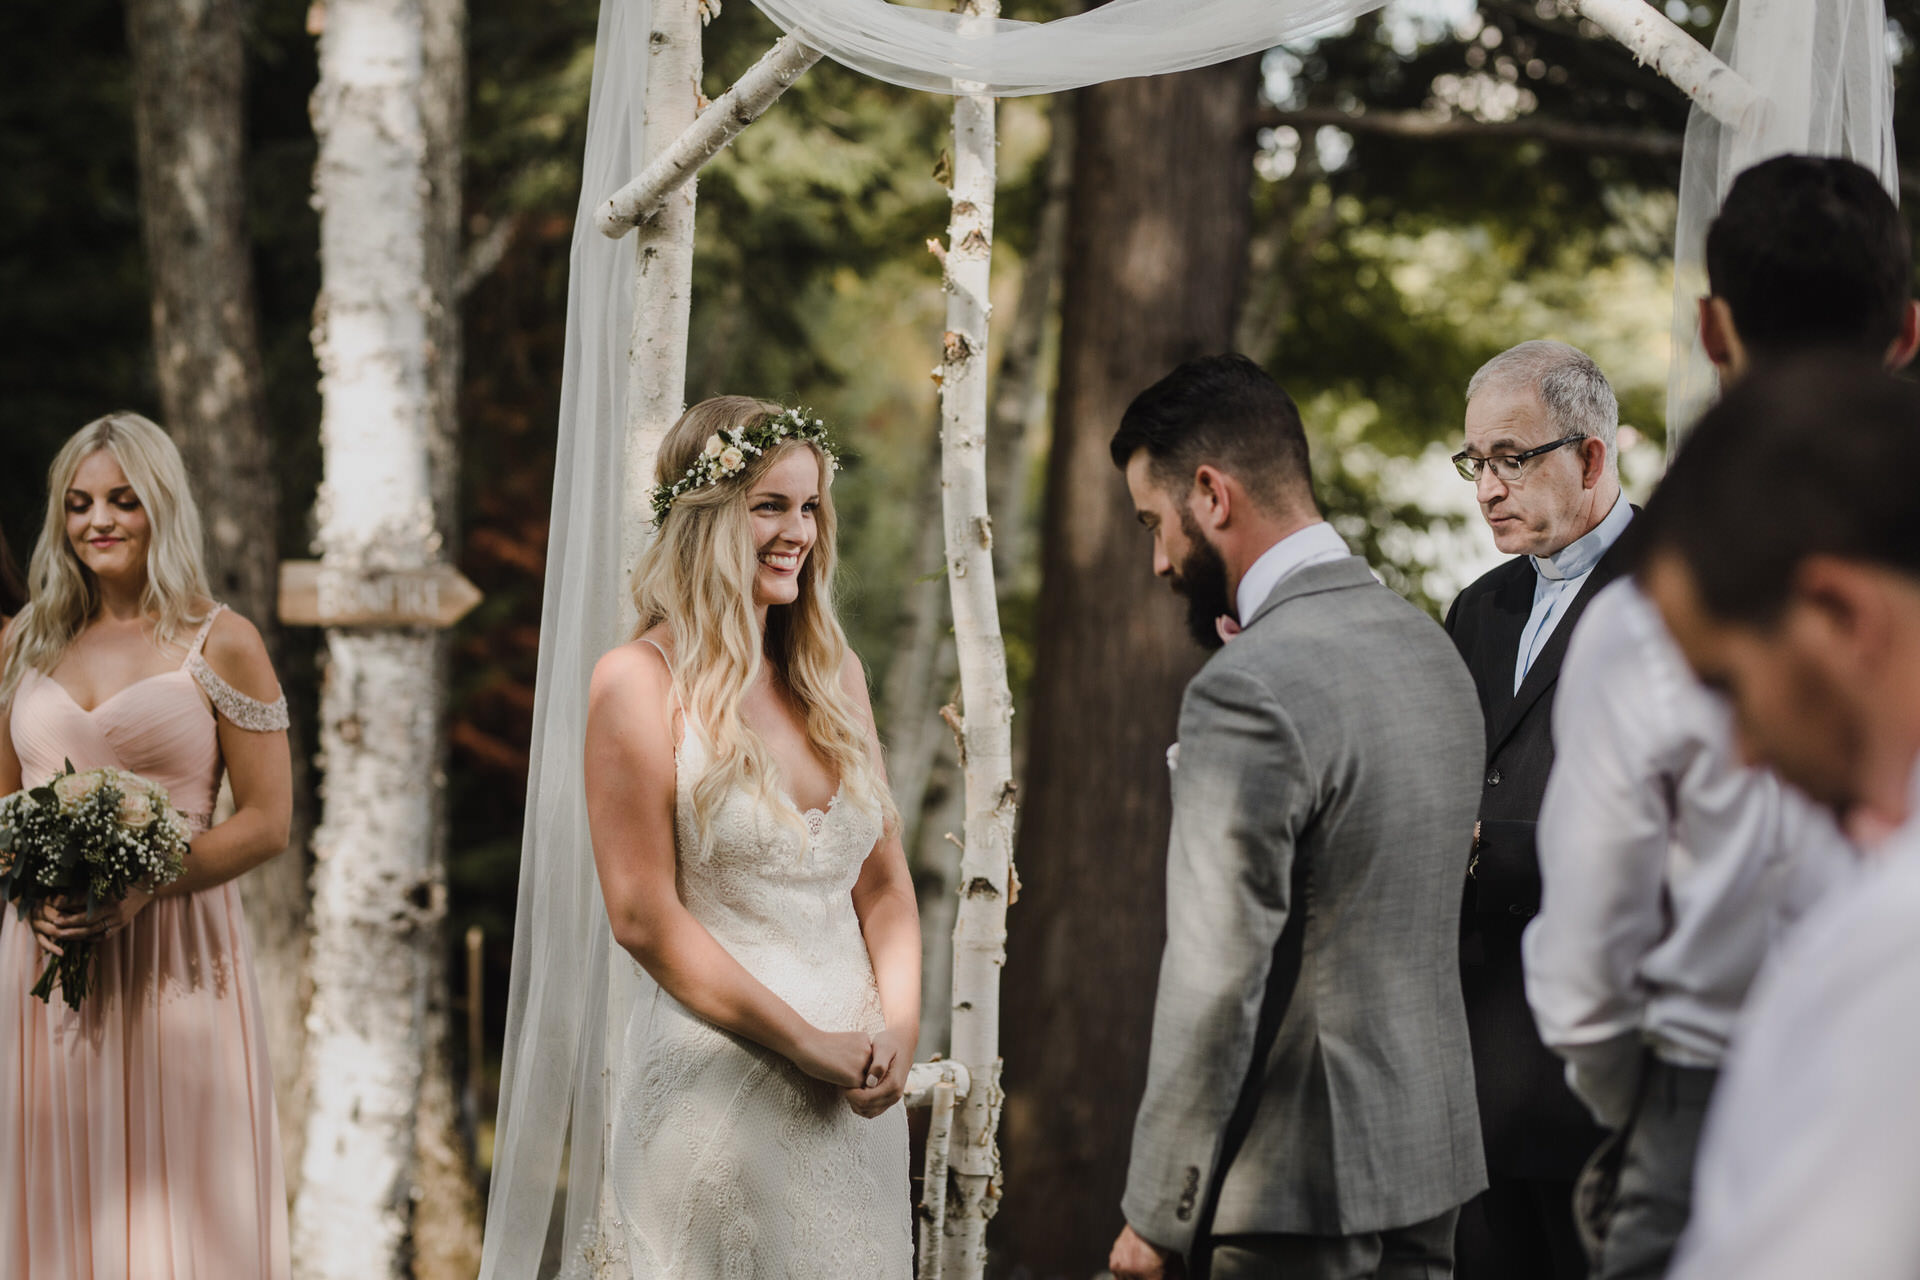 Muskoka Wedding - laughing at the alter